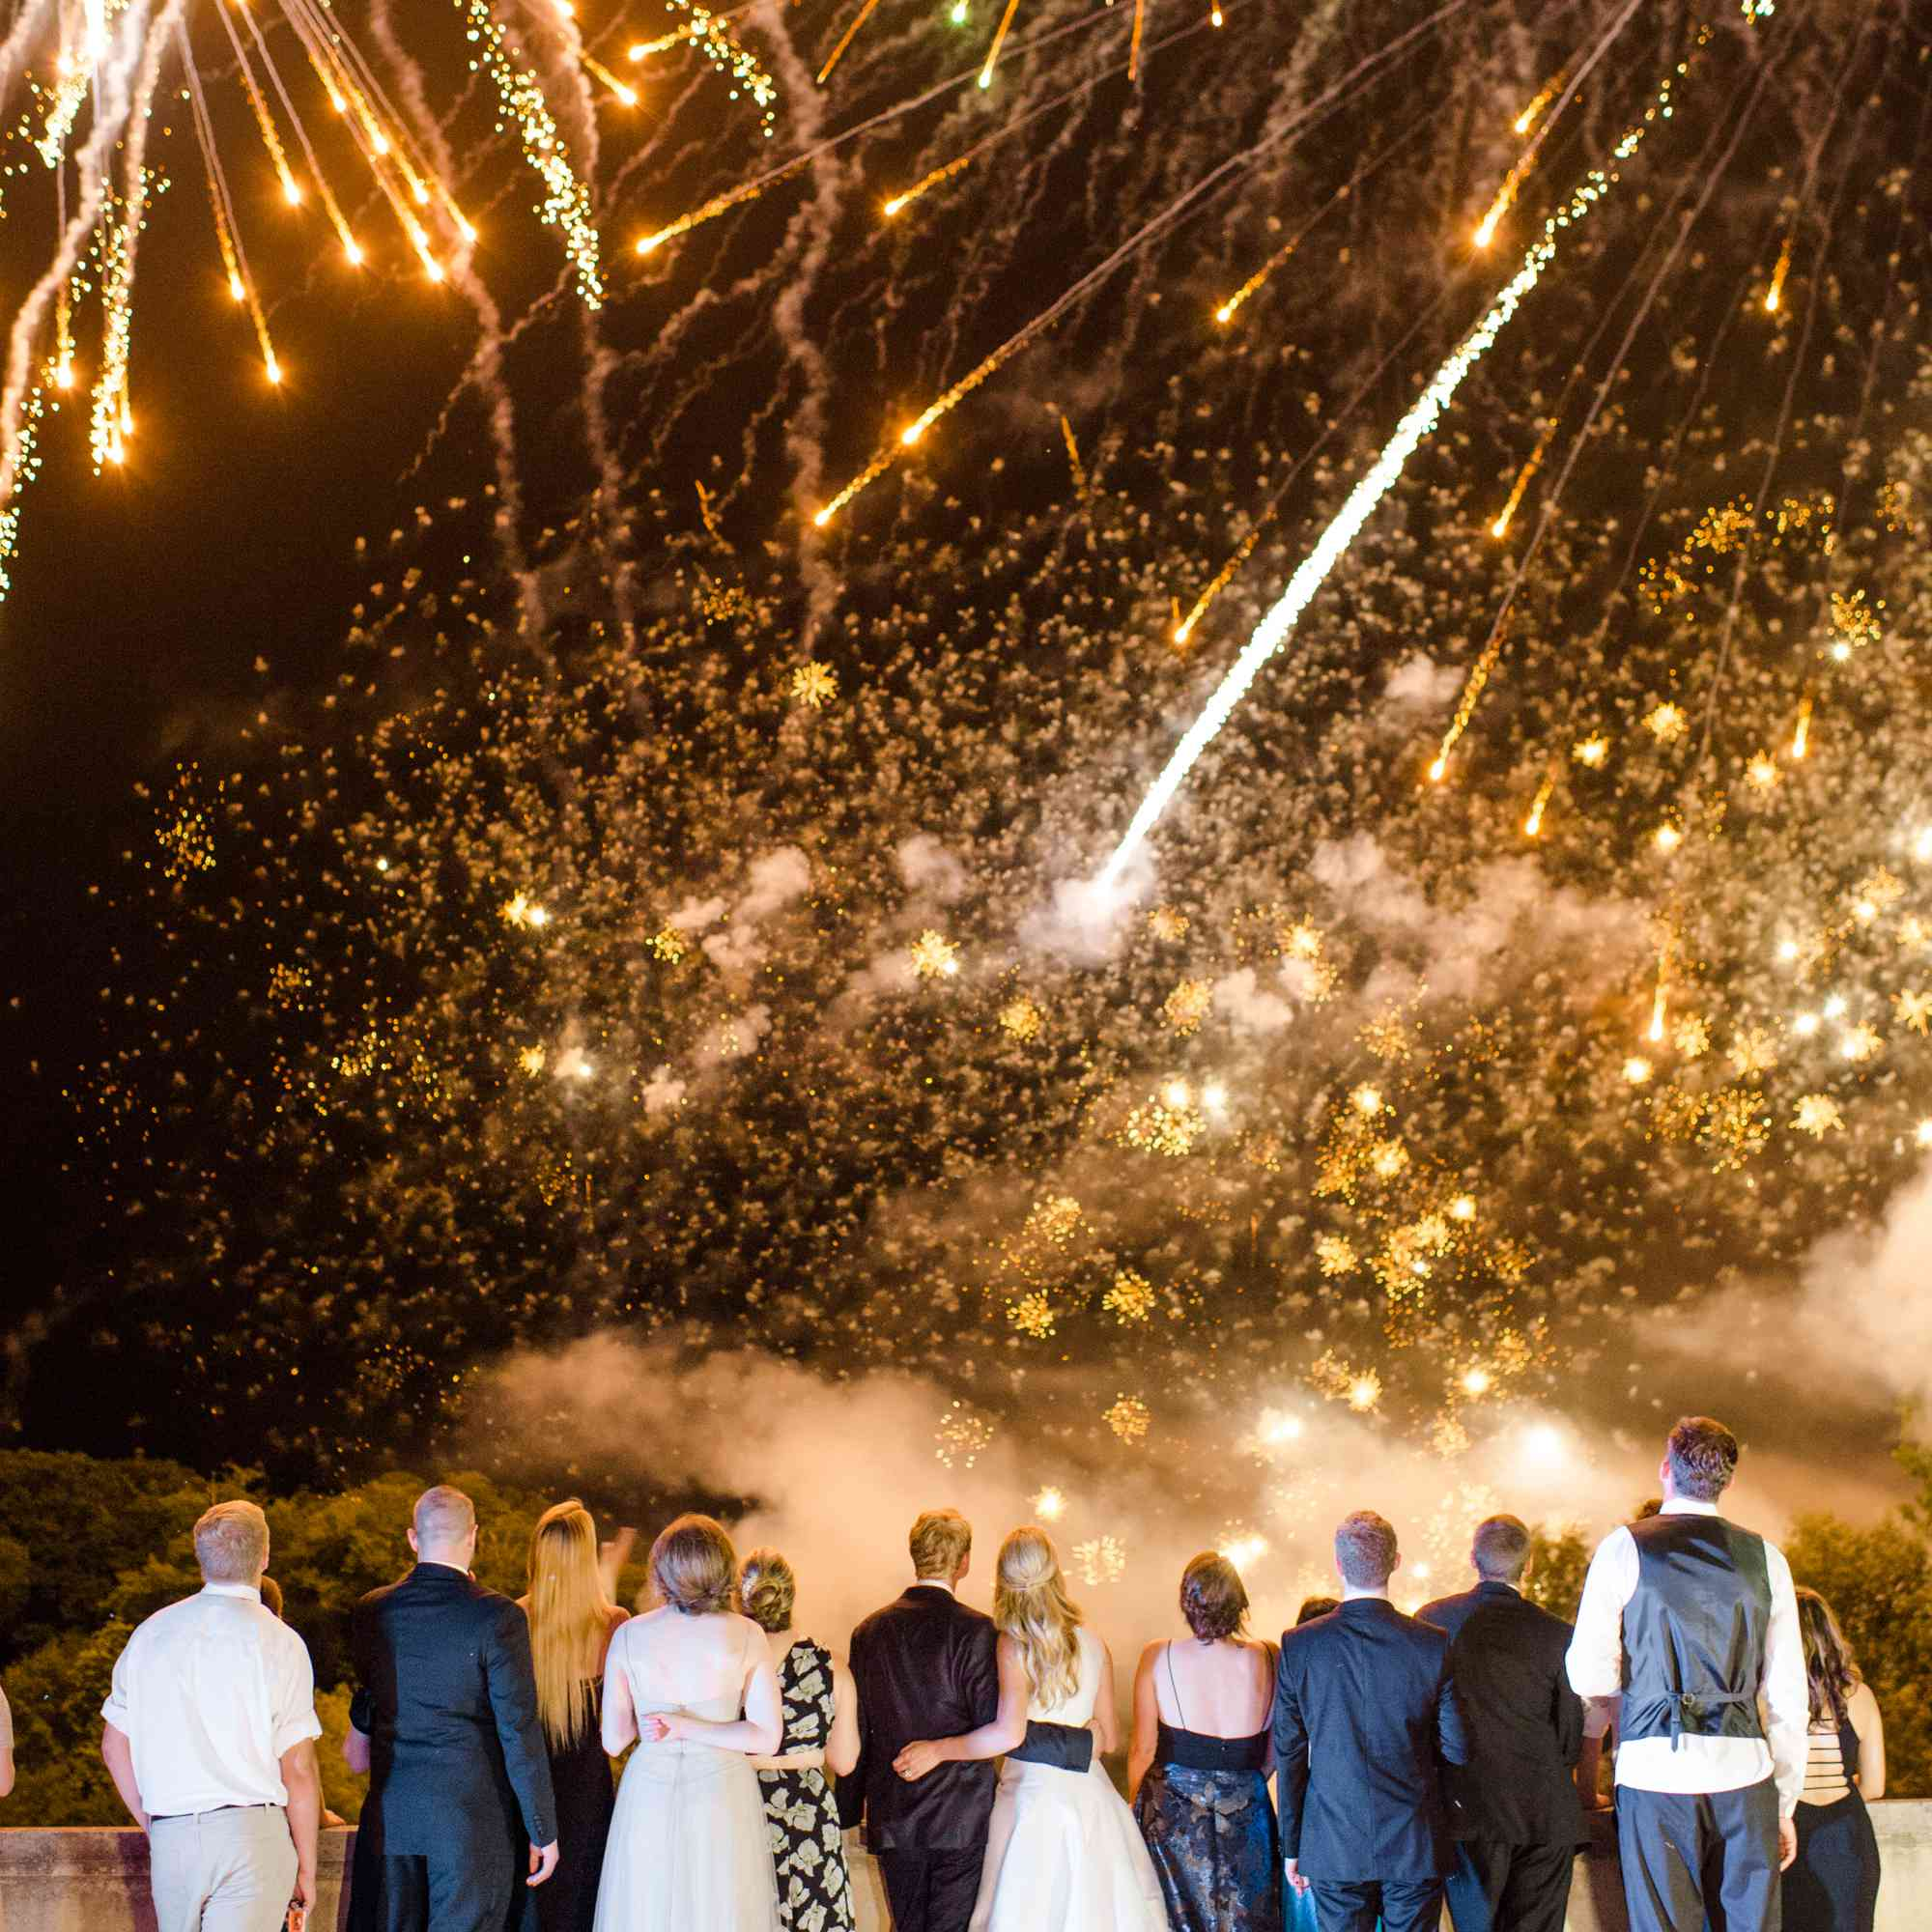 Wedding guests watching fireworks